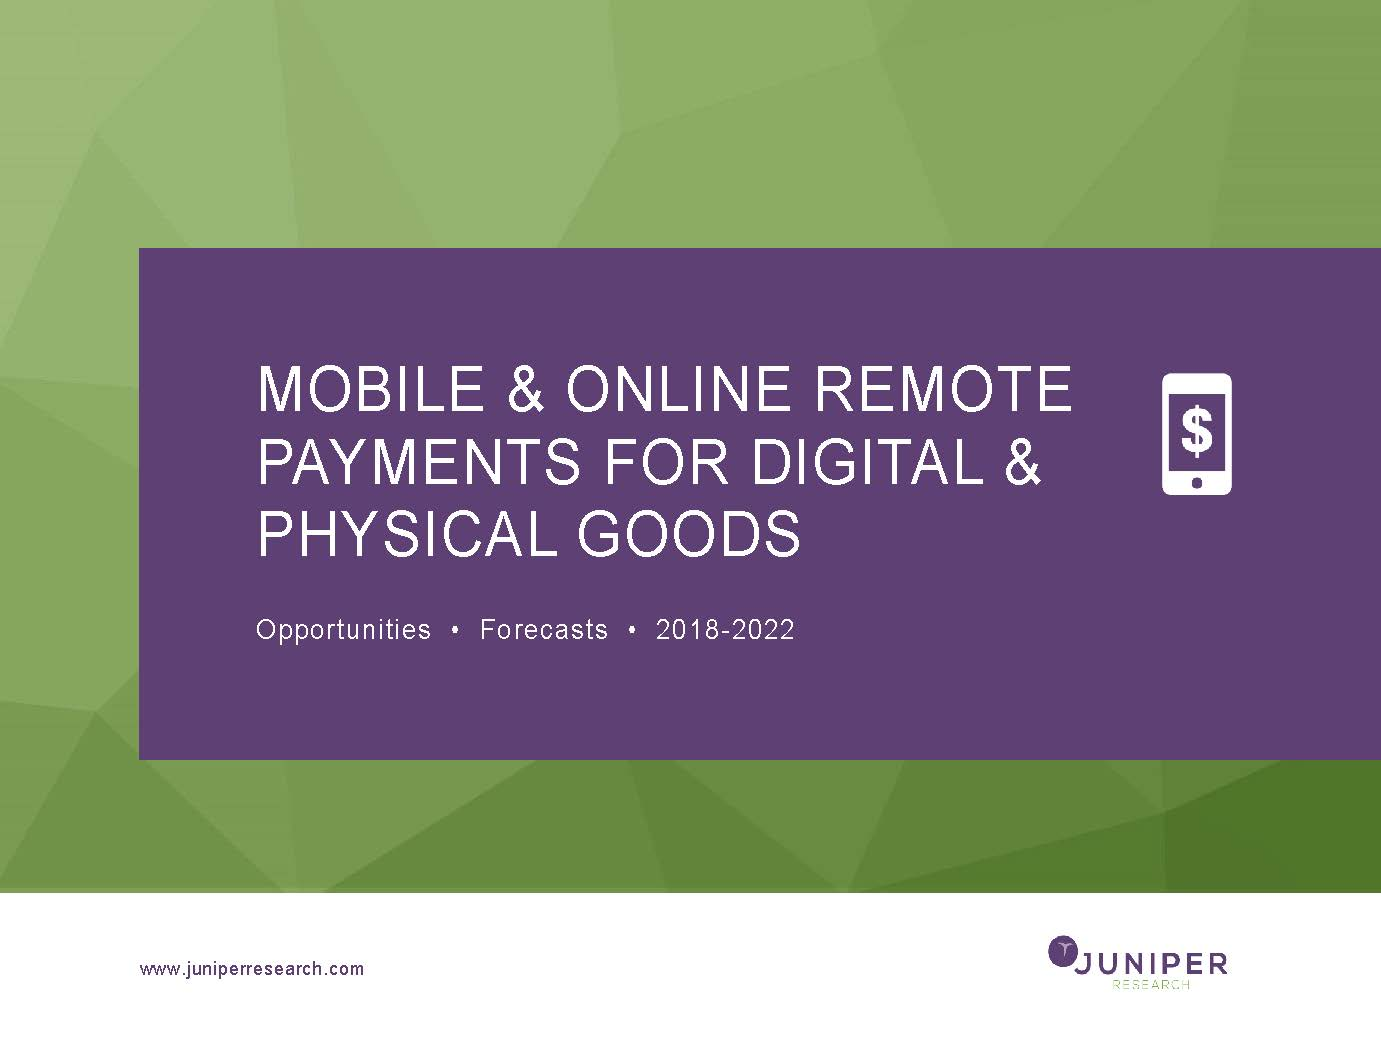 Mobile & Online Remote Payments for Digital & Physical Goods - Deep Dive Data & Forecasting 2018-2022